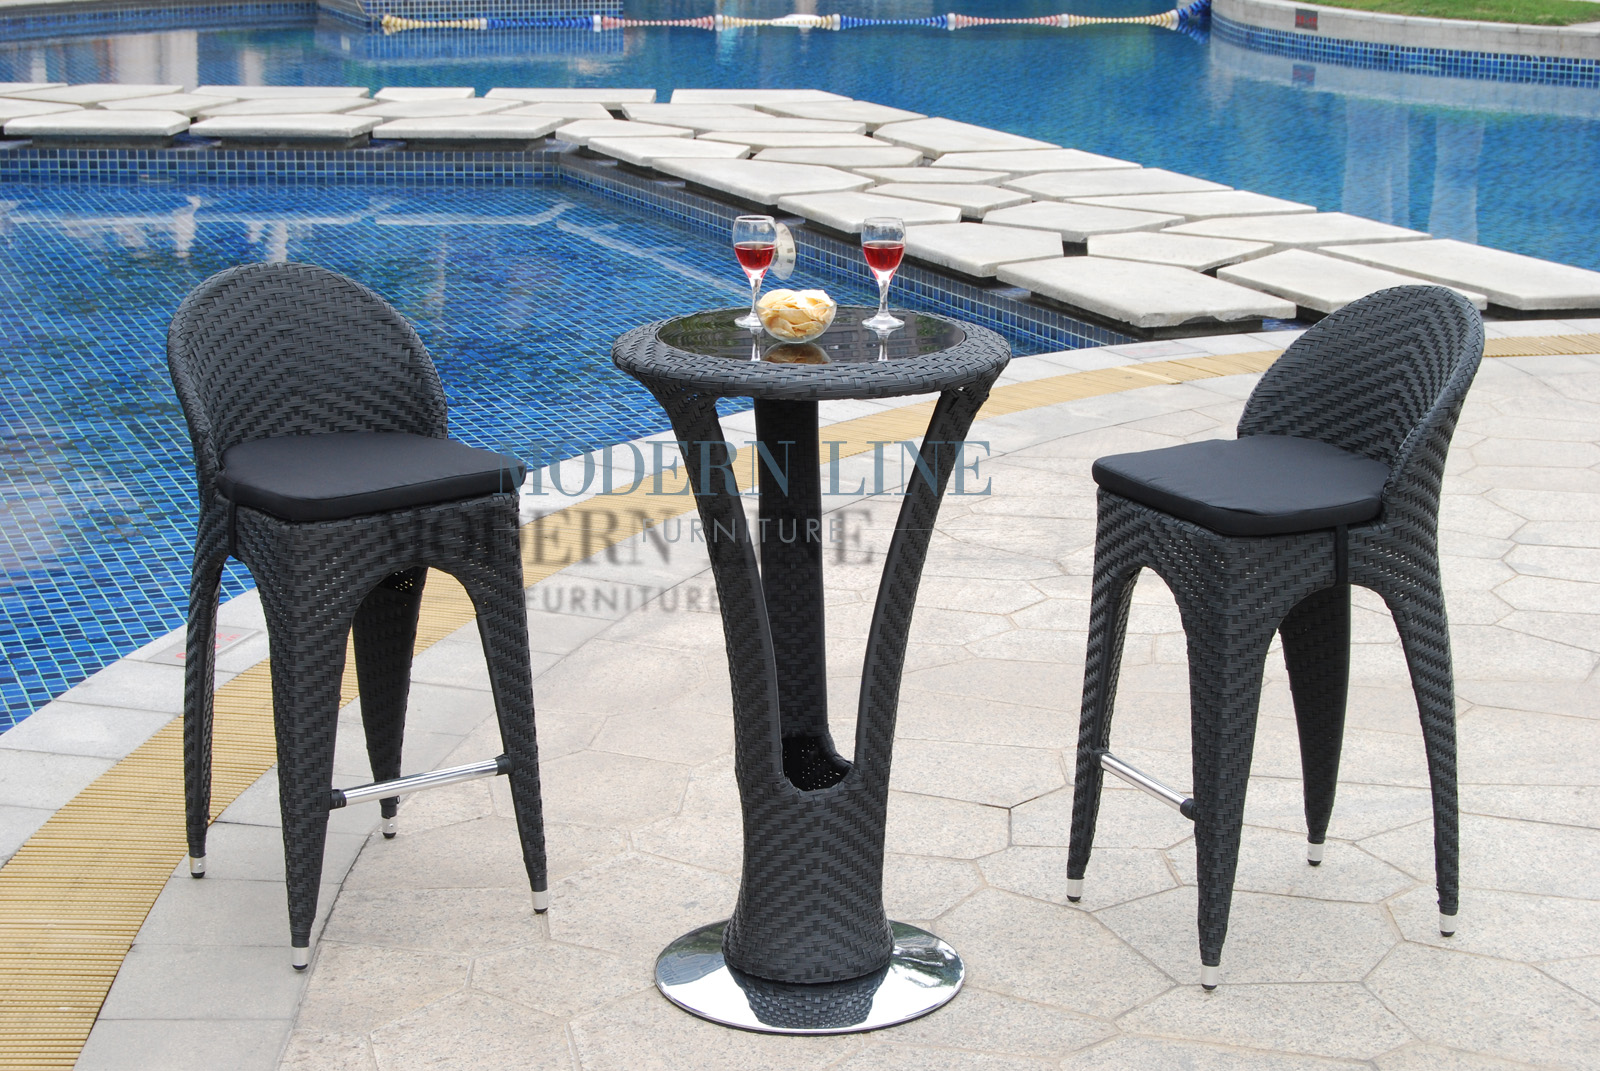 Delightful ... Outdoor Furniture | Outdoor Patio Dining | | Unique Modern Outdoor  Patio Bar Table Set   Bar Table With 2 Bar Stools With Black Seat Cushions